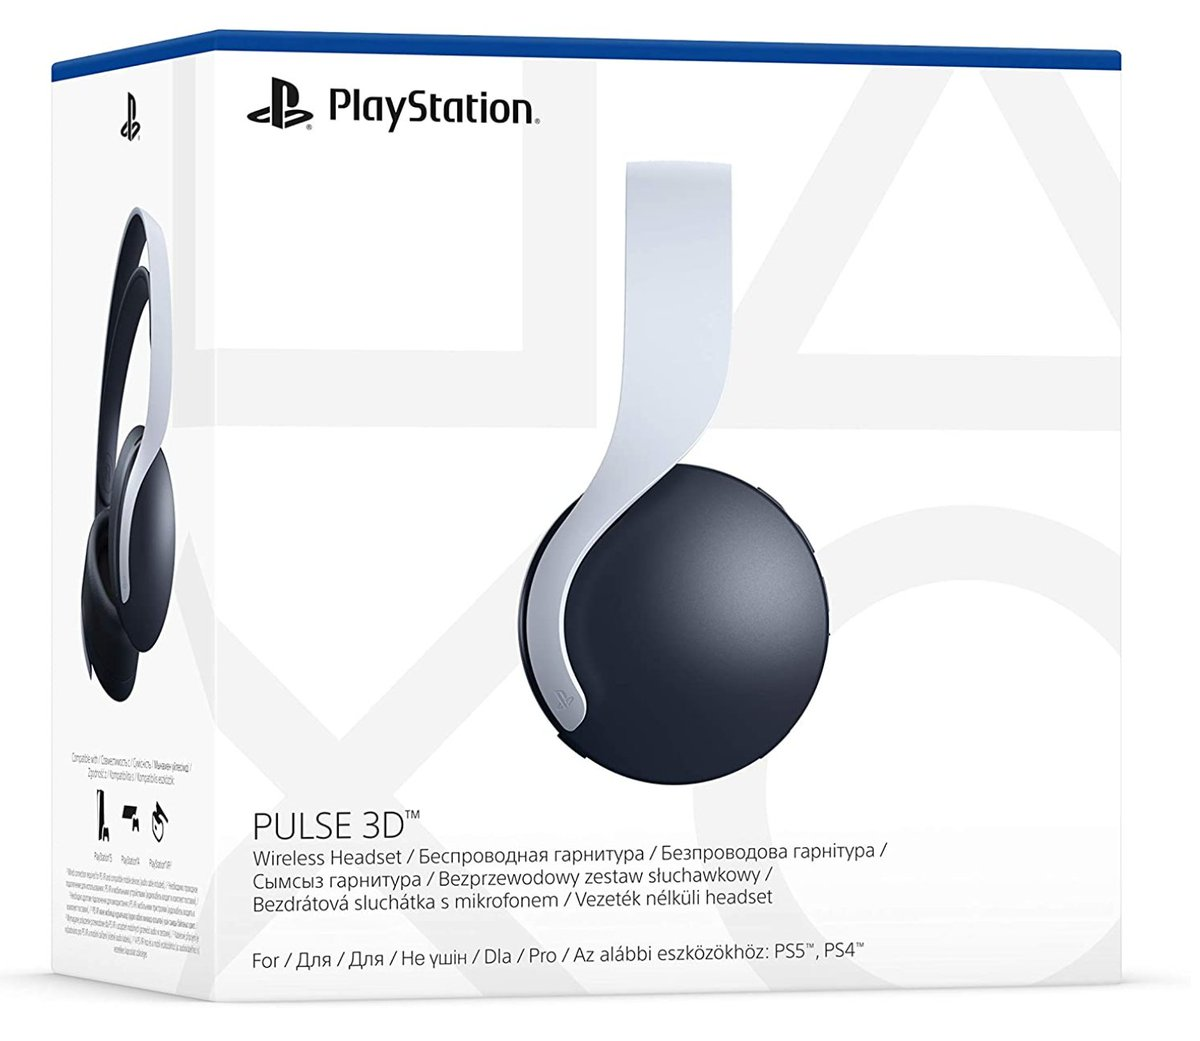 Pulse 3D Headset PS5 $99 Available to add to cart  Amazon USA 3